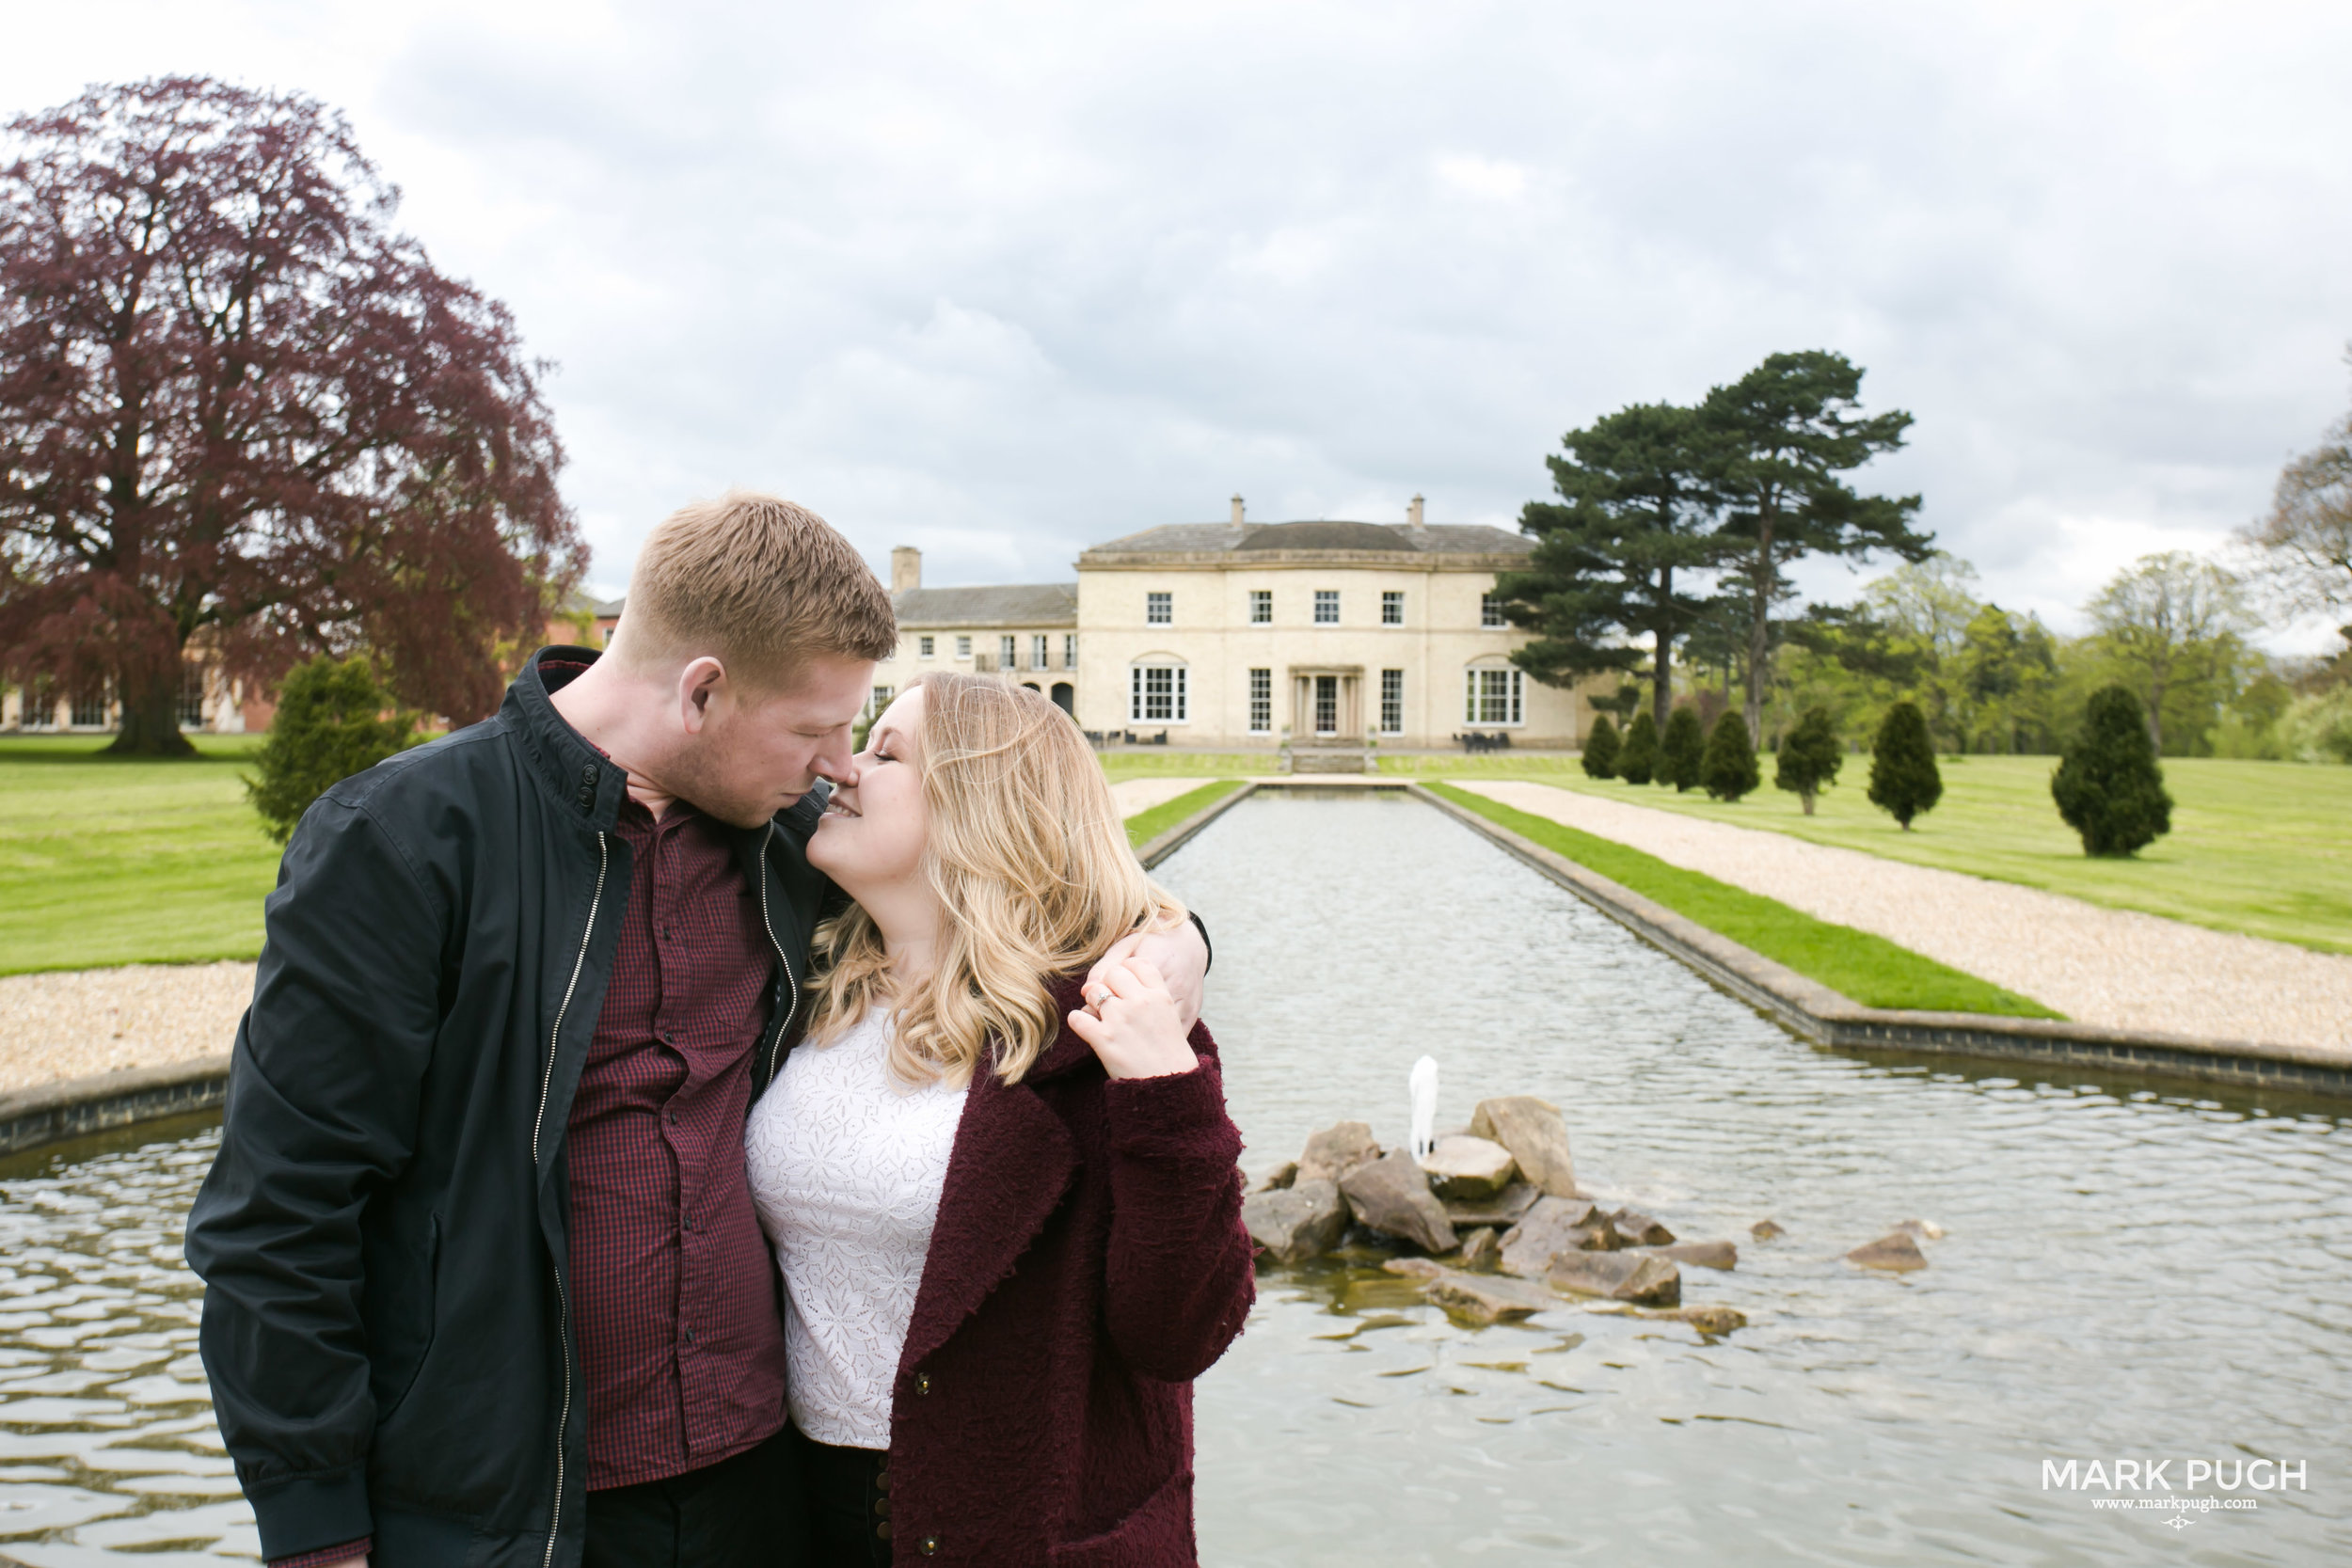 022 - Hayley and Tom - fineART preWED photography at Stubton Hall NG23 5DD by www.markpugh.com Mark Pugh of www.mpmedia.co.uk_.JPG